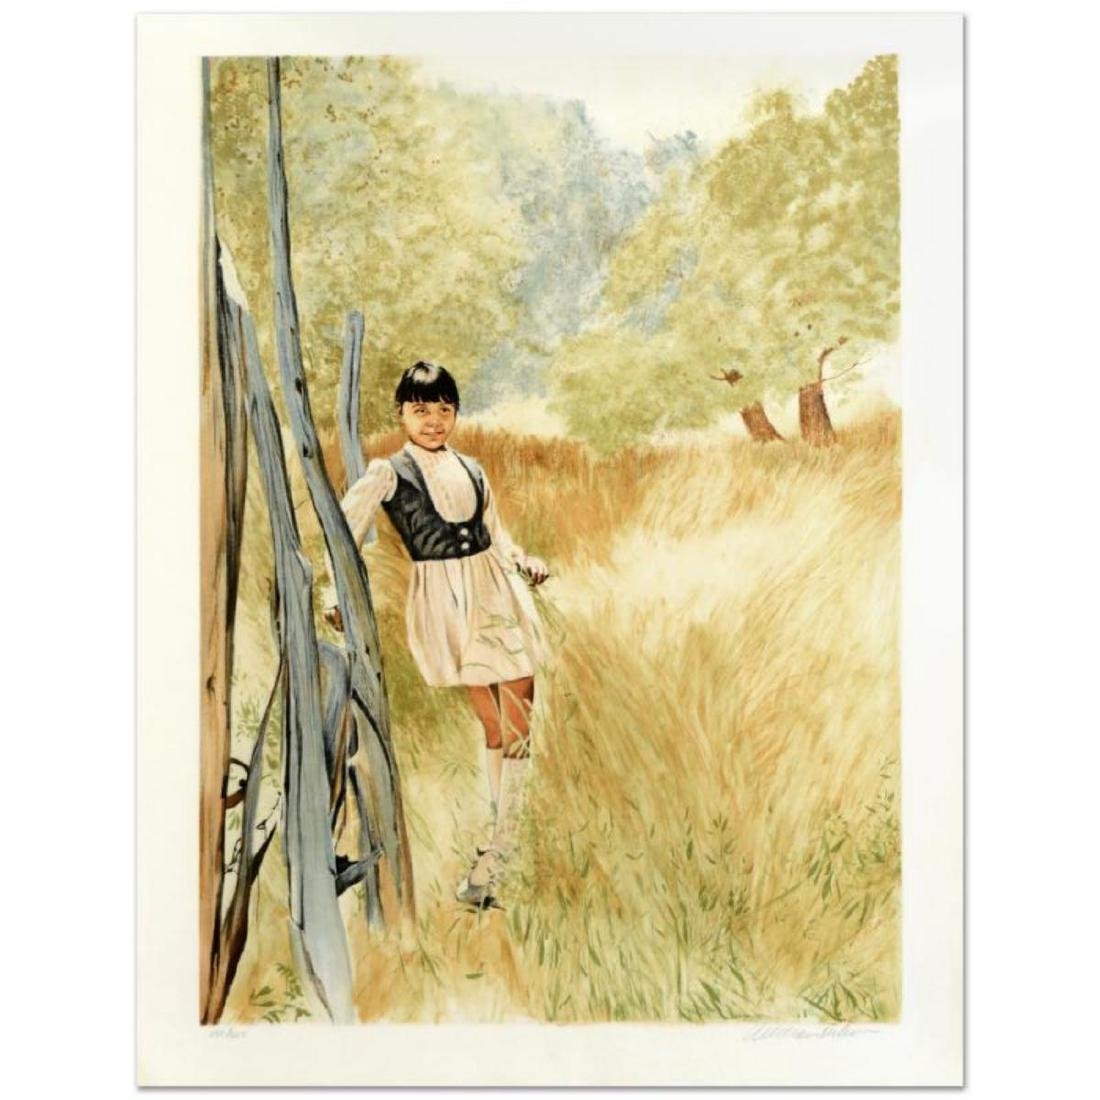 """William Nelson - """"Girl in Meadow"""" Limited Edition"""